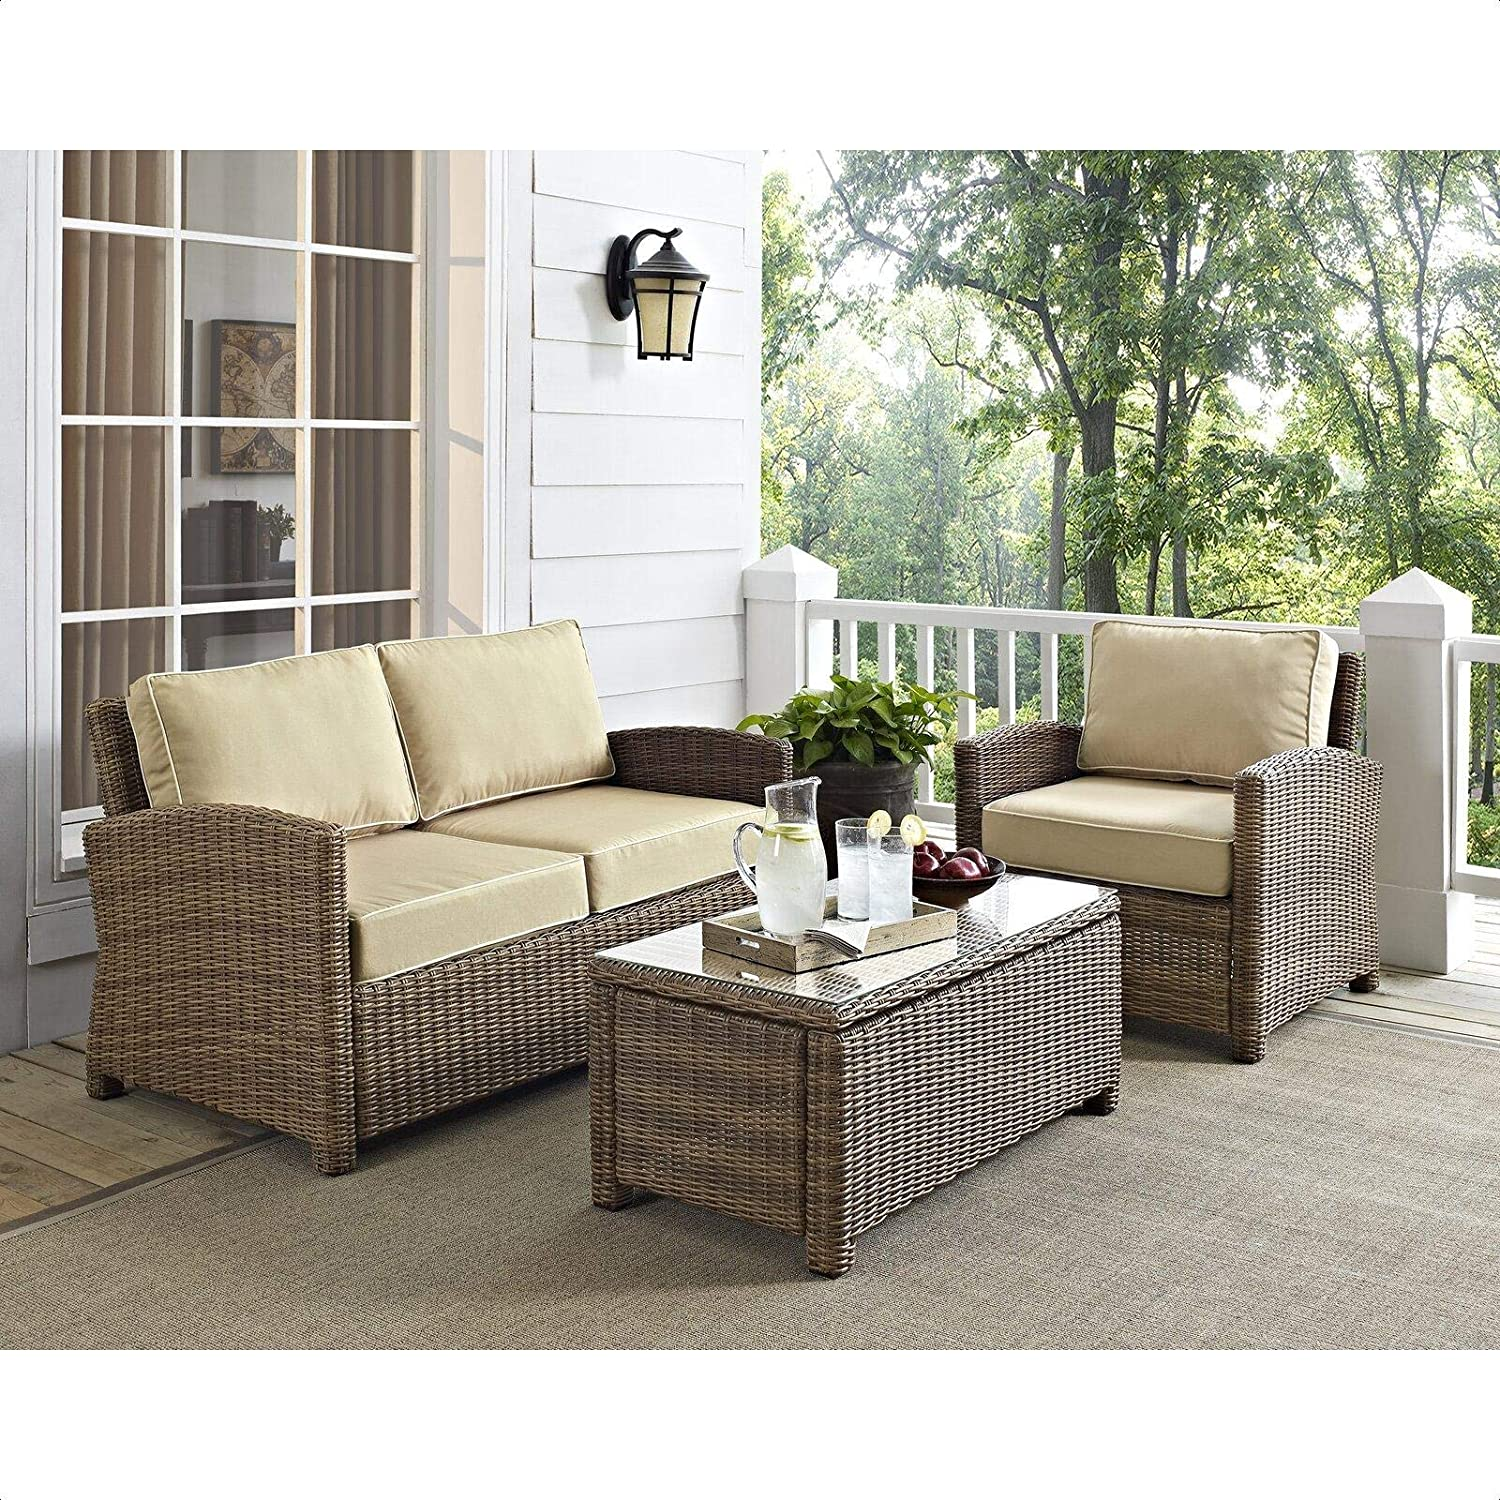 Lawson Deep Seating Seating Group With Cushions Garden Outdoor